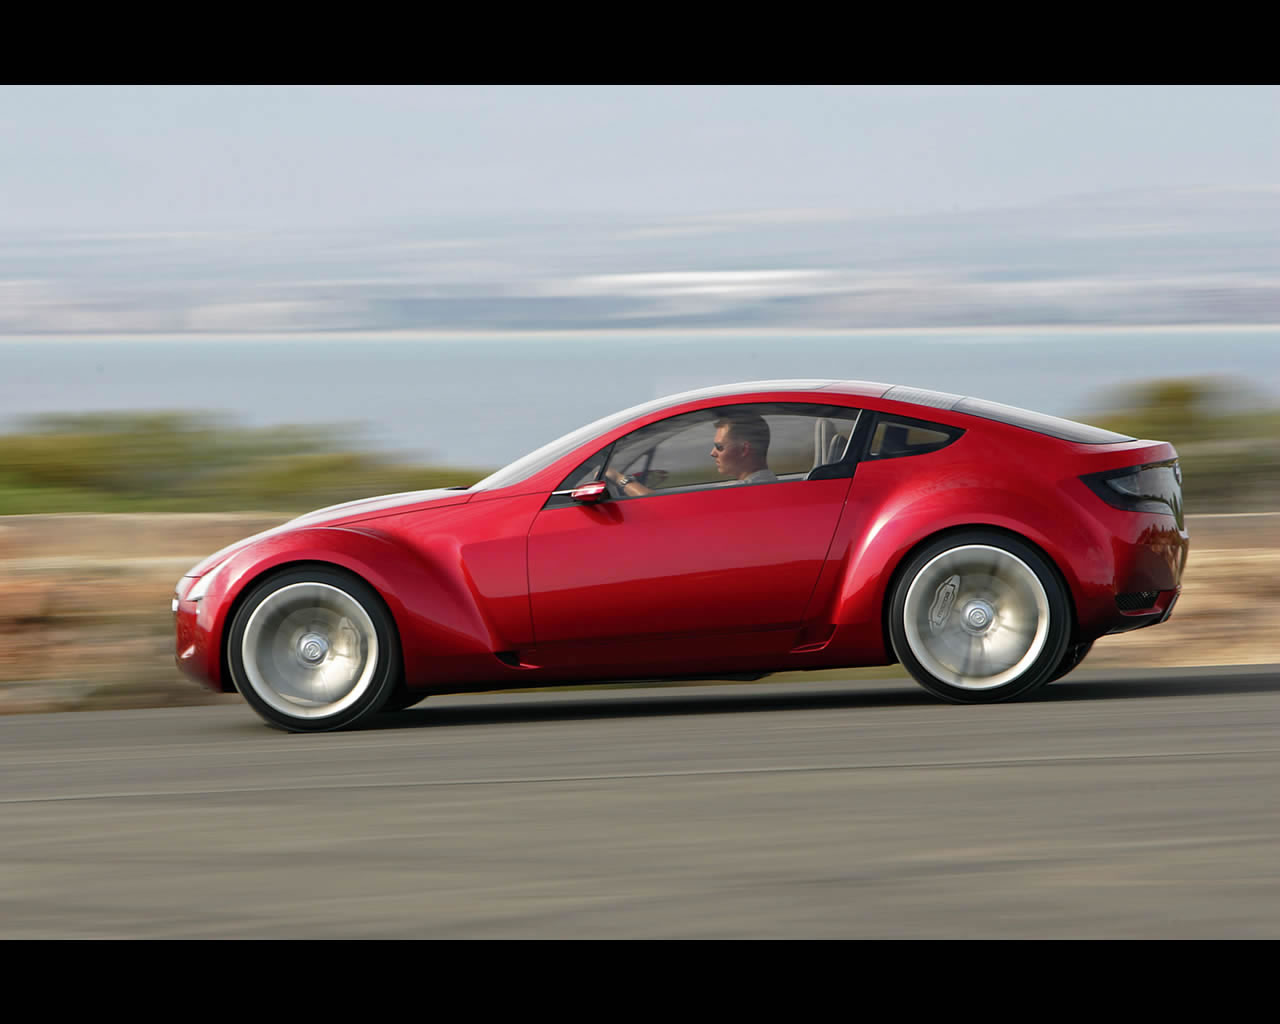 http://autoconcept-reviews.com/cars_reviews/mazda/mazda-kabura/wallpaper/Mazda_Kabura_2006_driving04_print.jpg